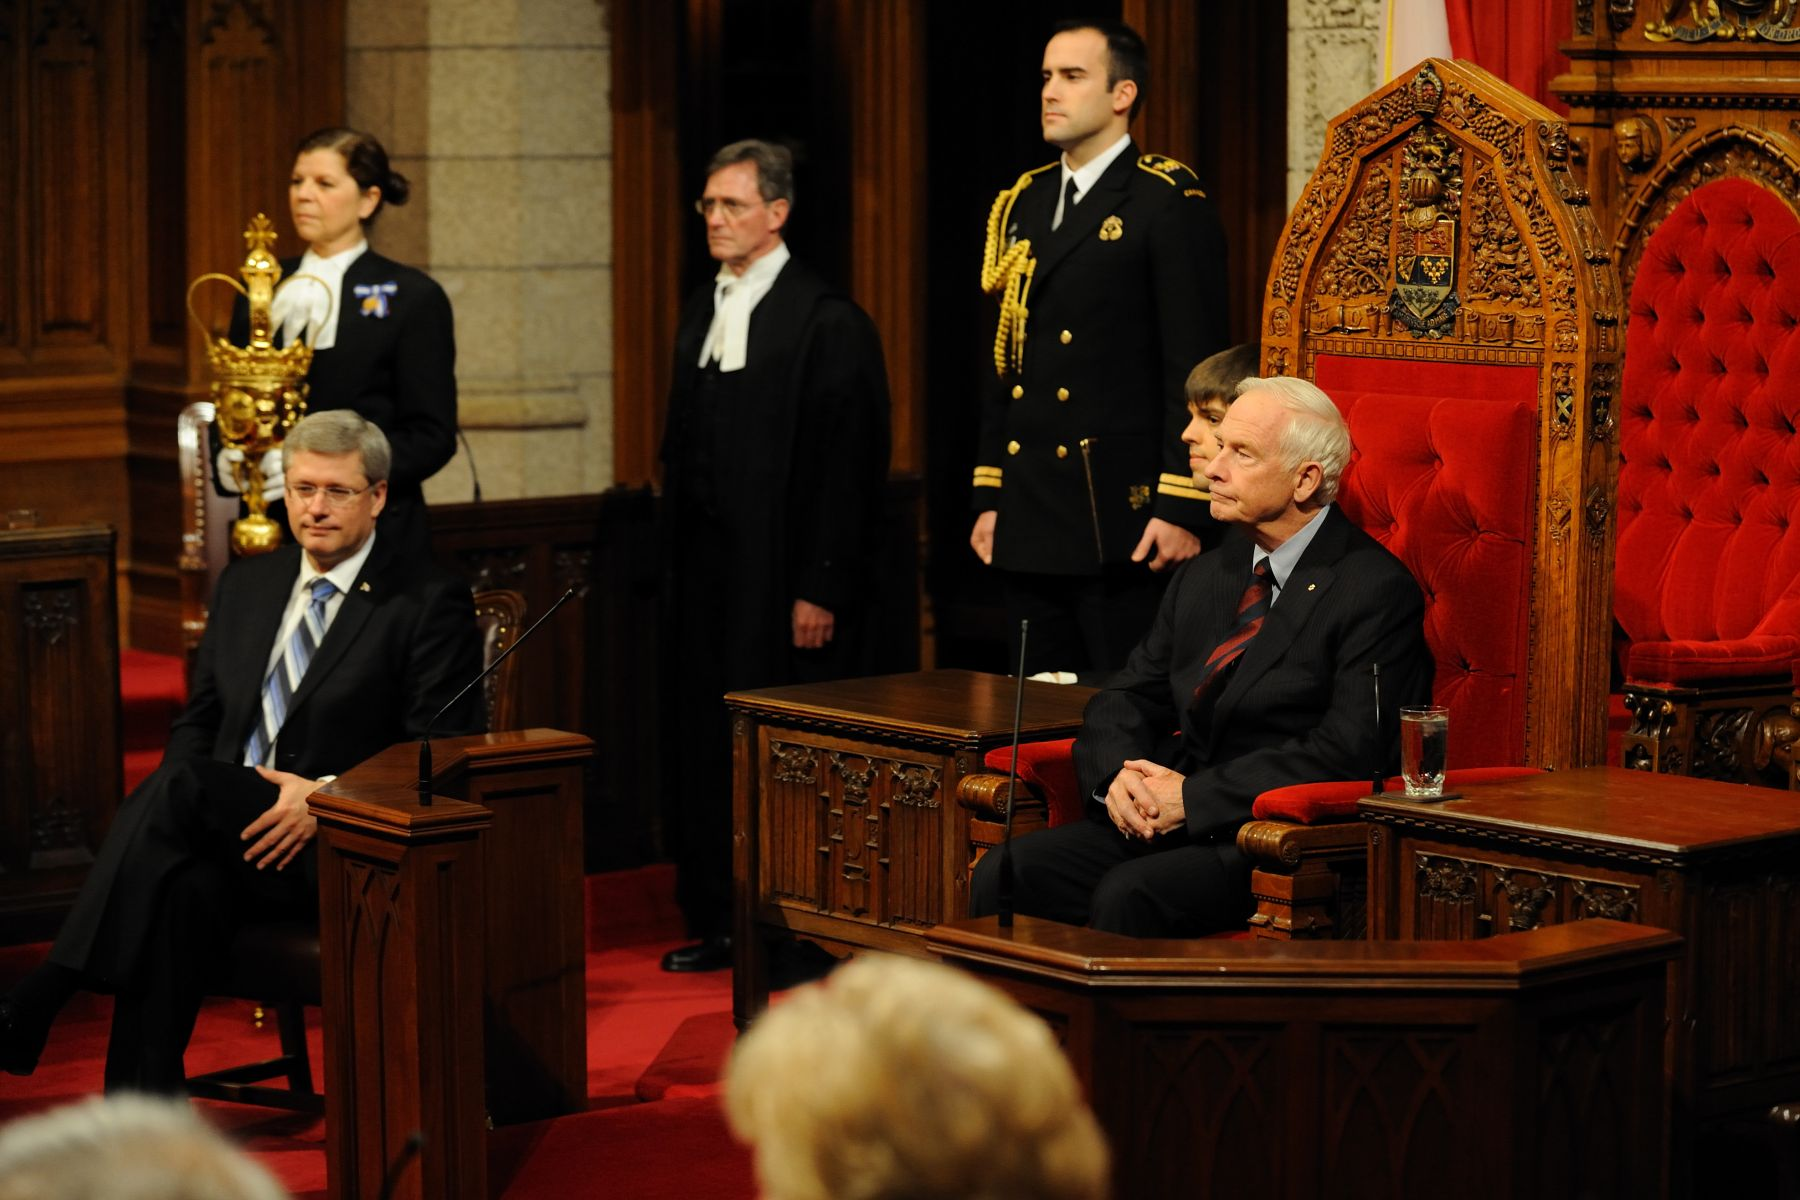 His Excellency the Right Honourable David Johnston, Governor General of Canada, granted Royal Assent to bills during a formal ceremony in the Senate Chamber, on December 15, 2010. This was the Governor General's second Royal Assent since his installation ceremony on October 1, 2010. His first royal assent was by written declaration on November 18, 2010.